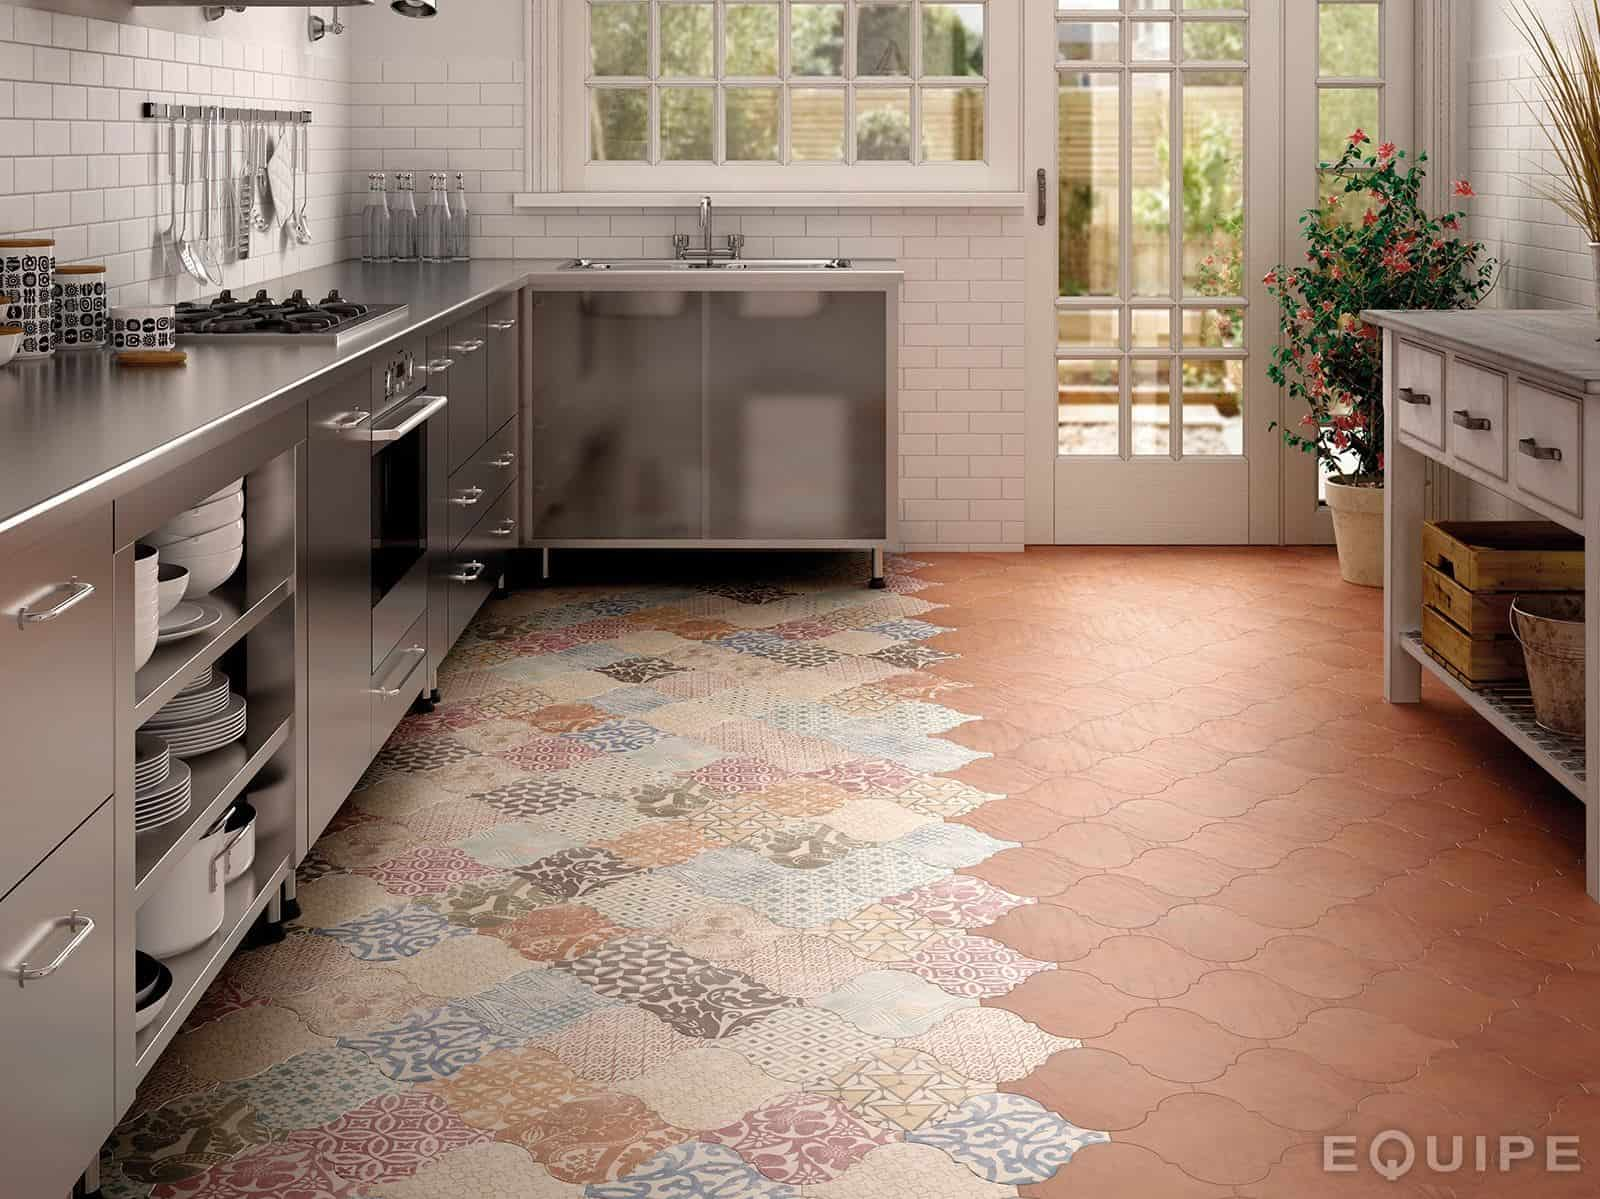 kitchen tile designs photos 21 arabesque tile ideas for floor wall and backsplash 386